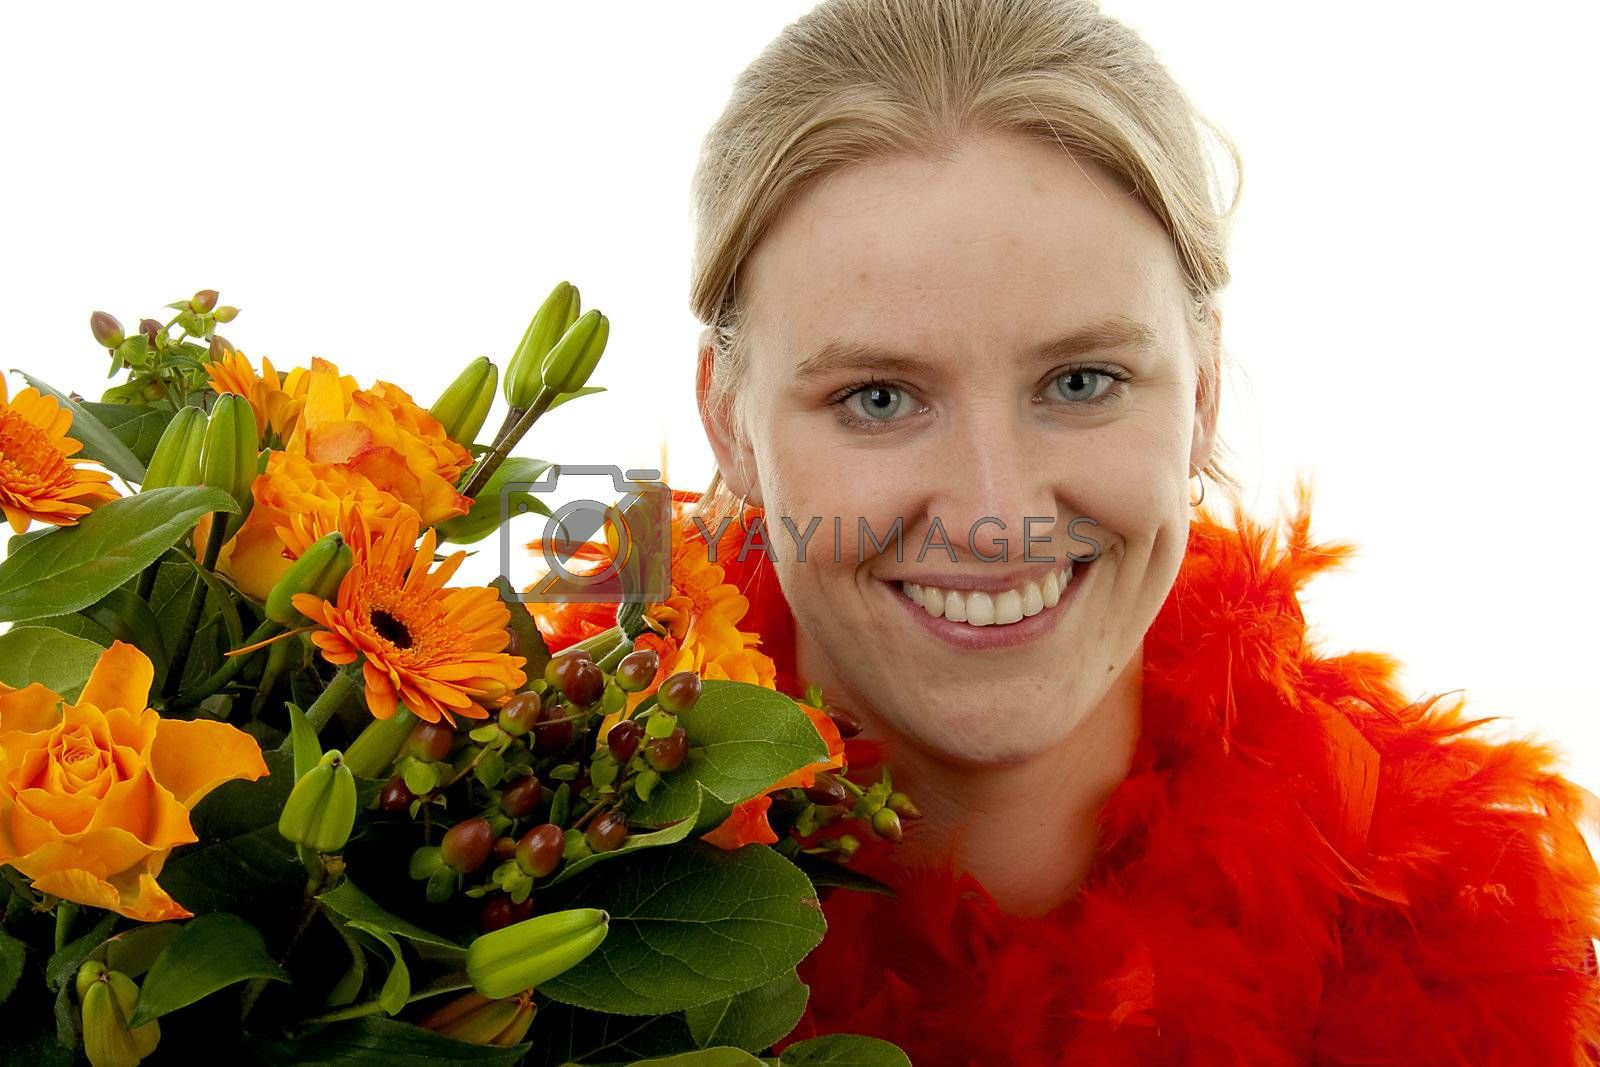 Woman with beautiful orange flowers in closeup over white background